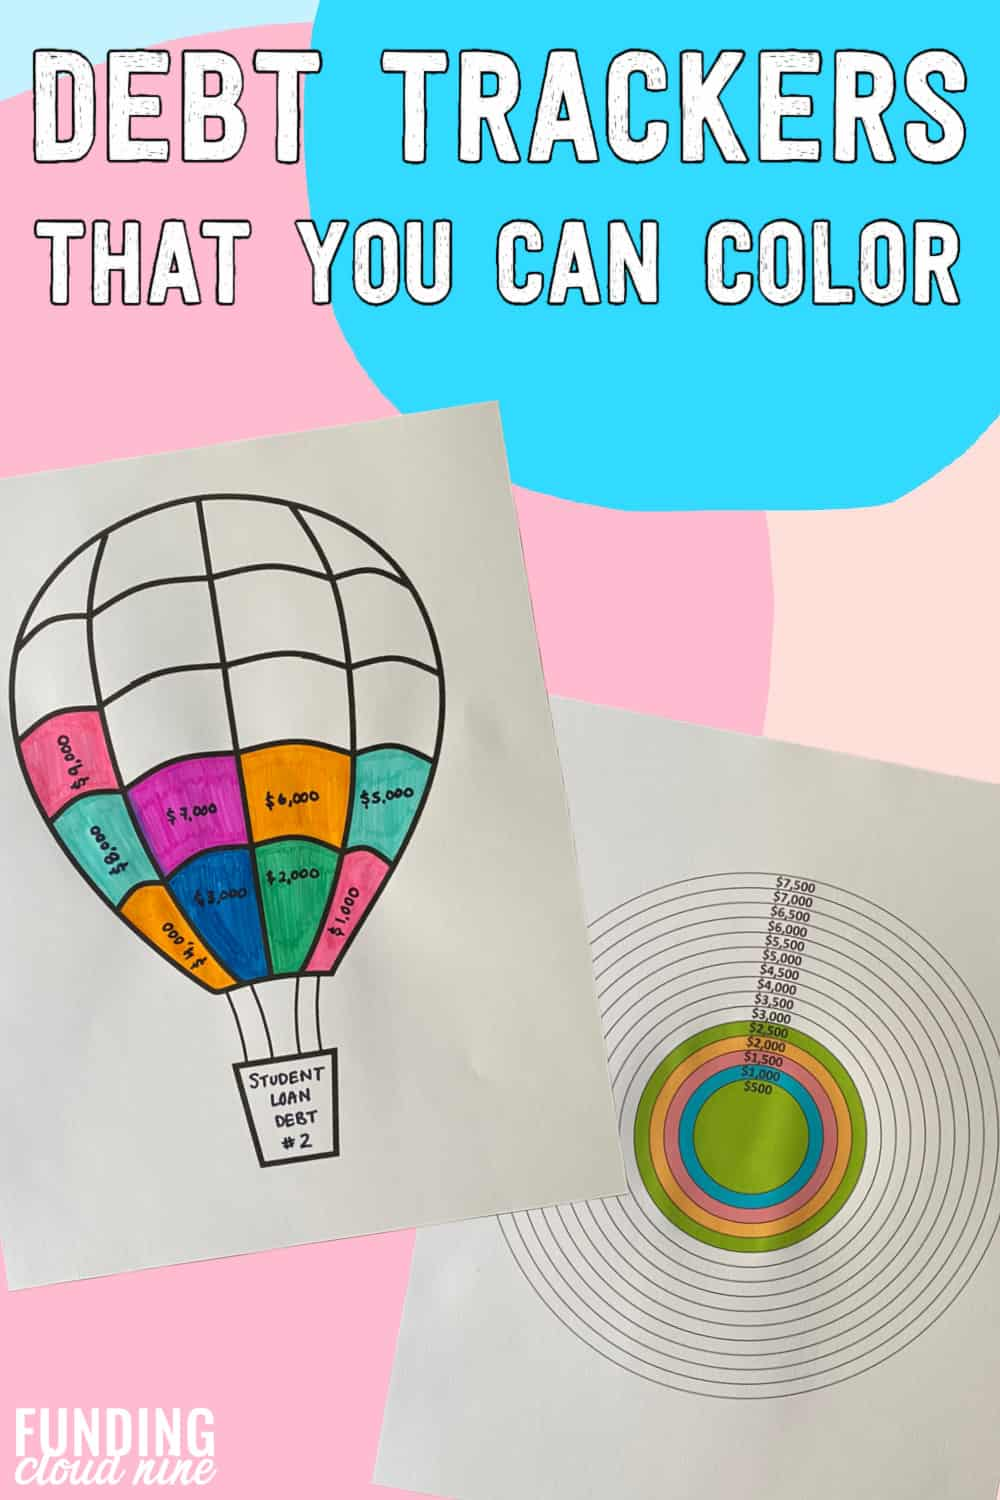 Color your way to debt-freedom with these coloring debt trackers